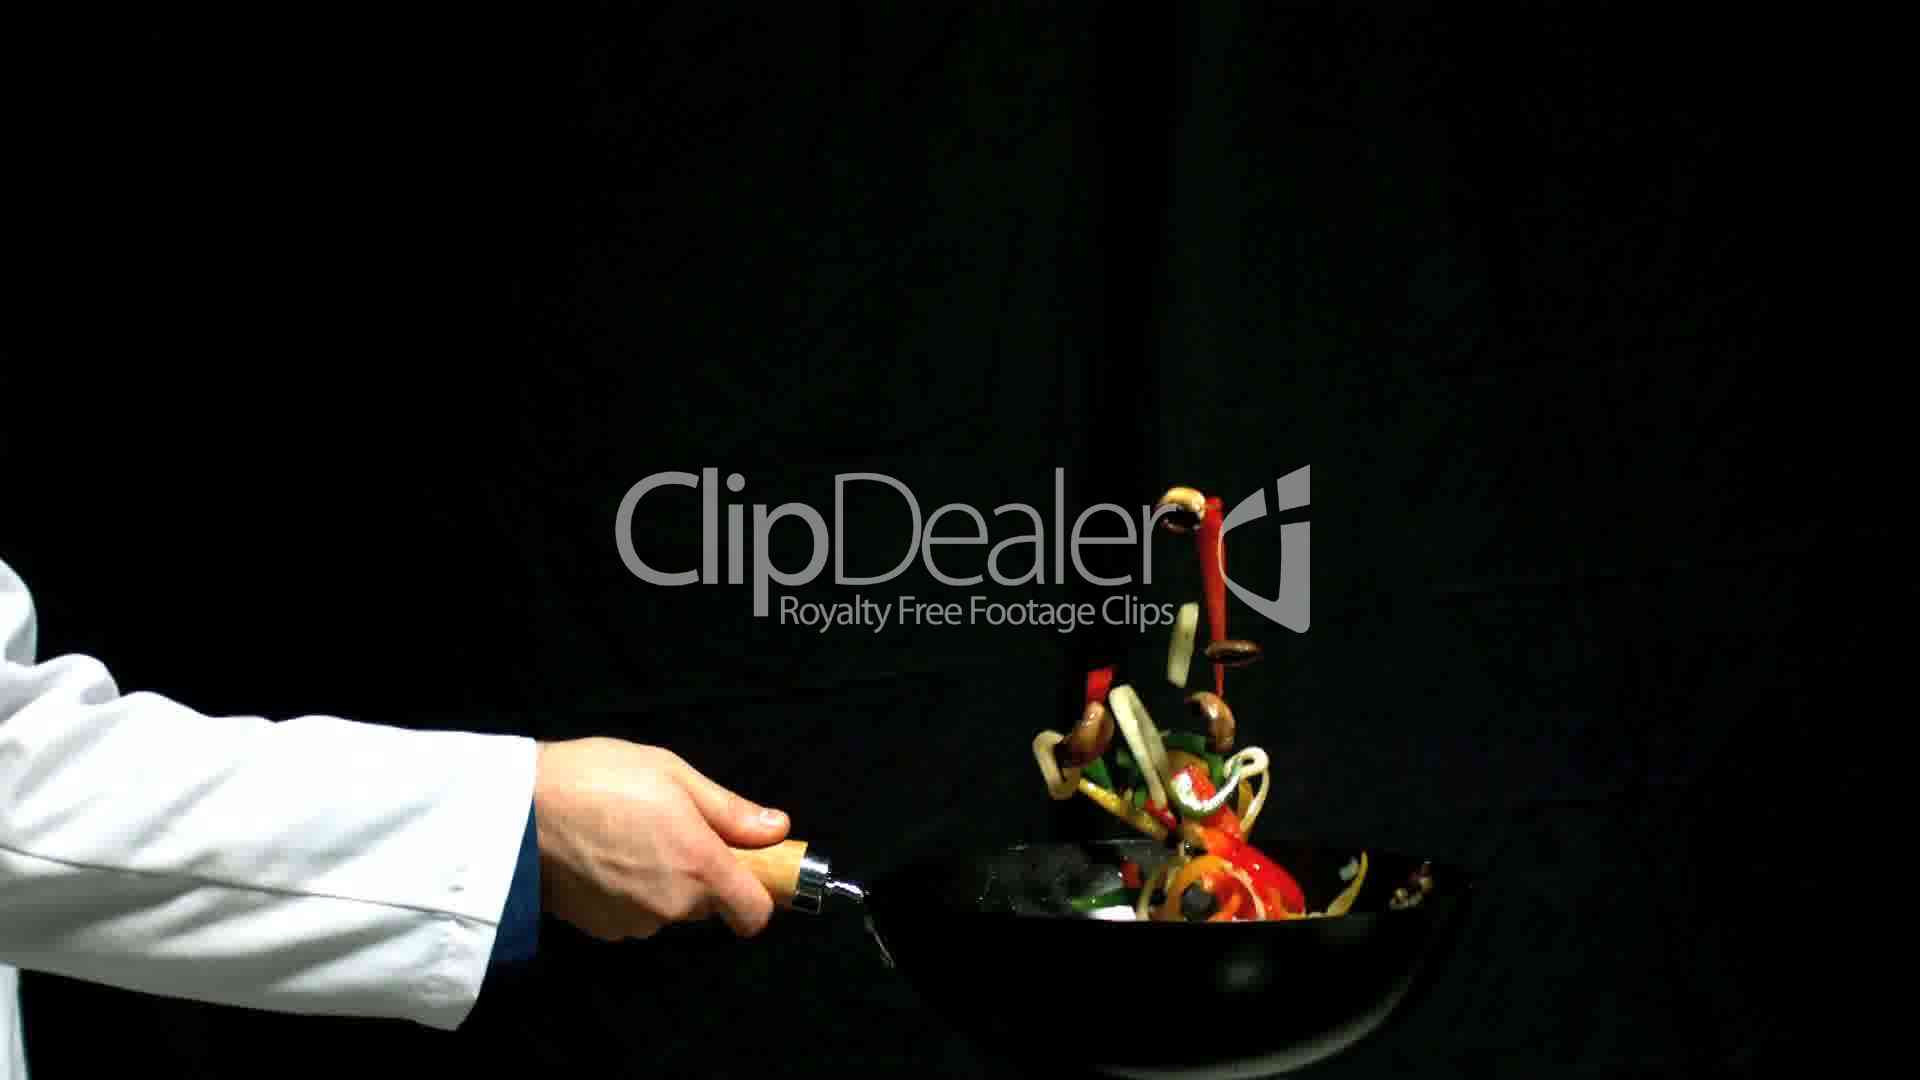 HD Images Collection of Chef: 39785318 by Jill Drexler